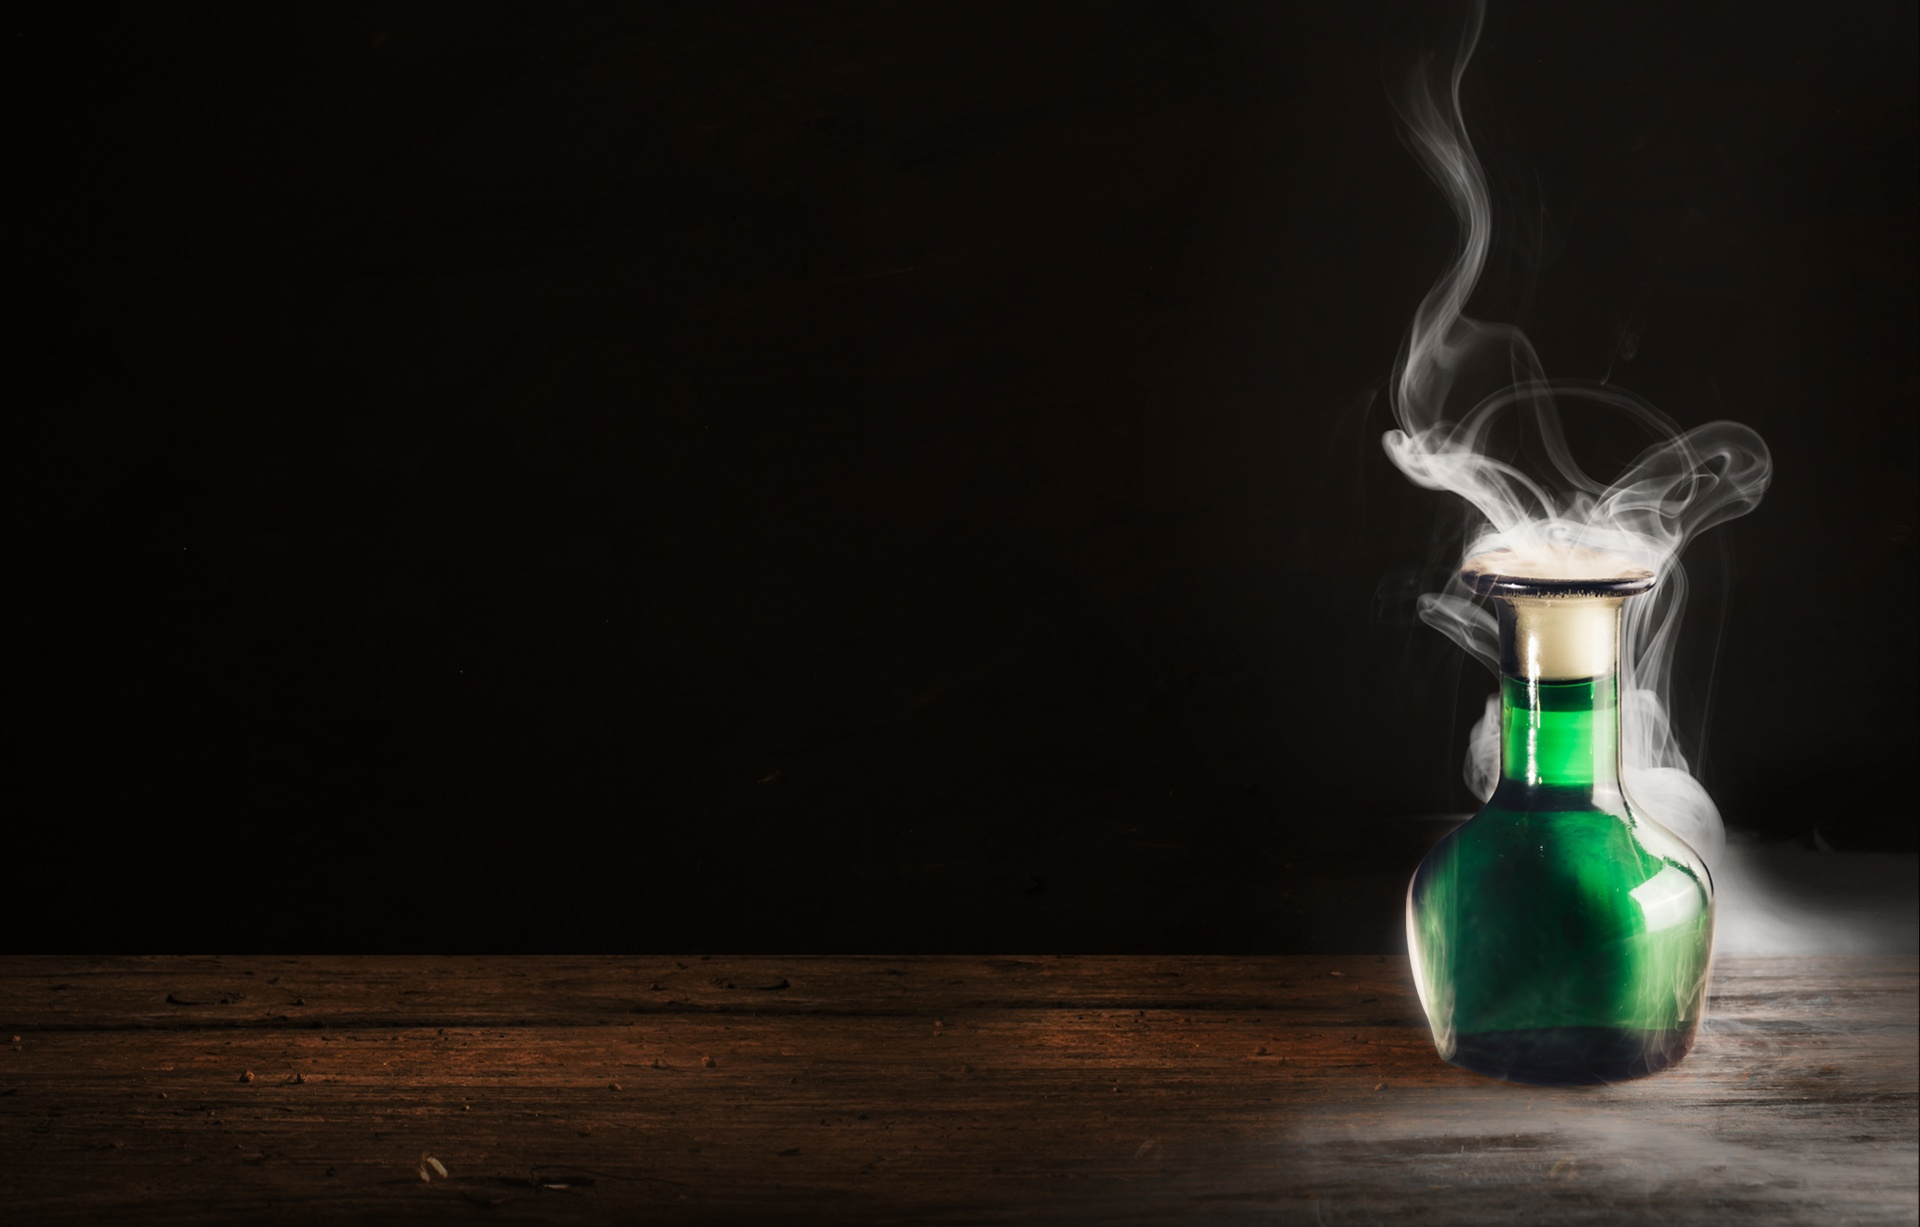 Hubspot_Secret-Potion-ERP_v3.jpg